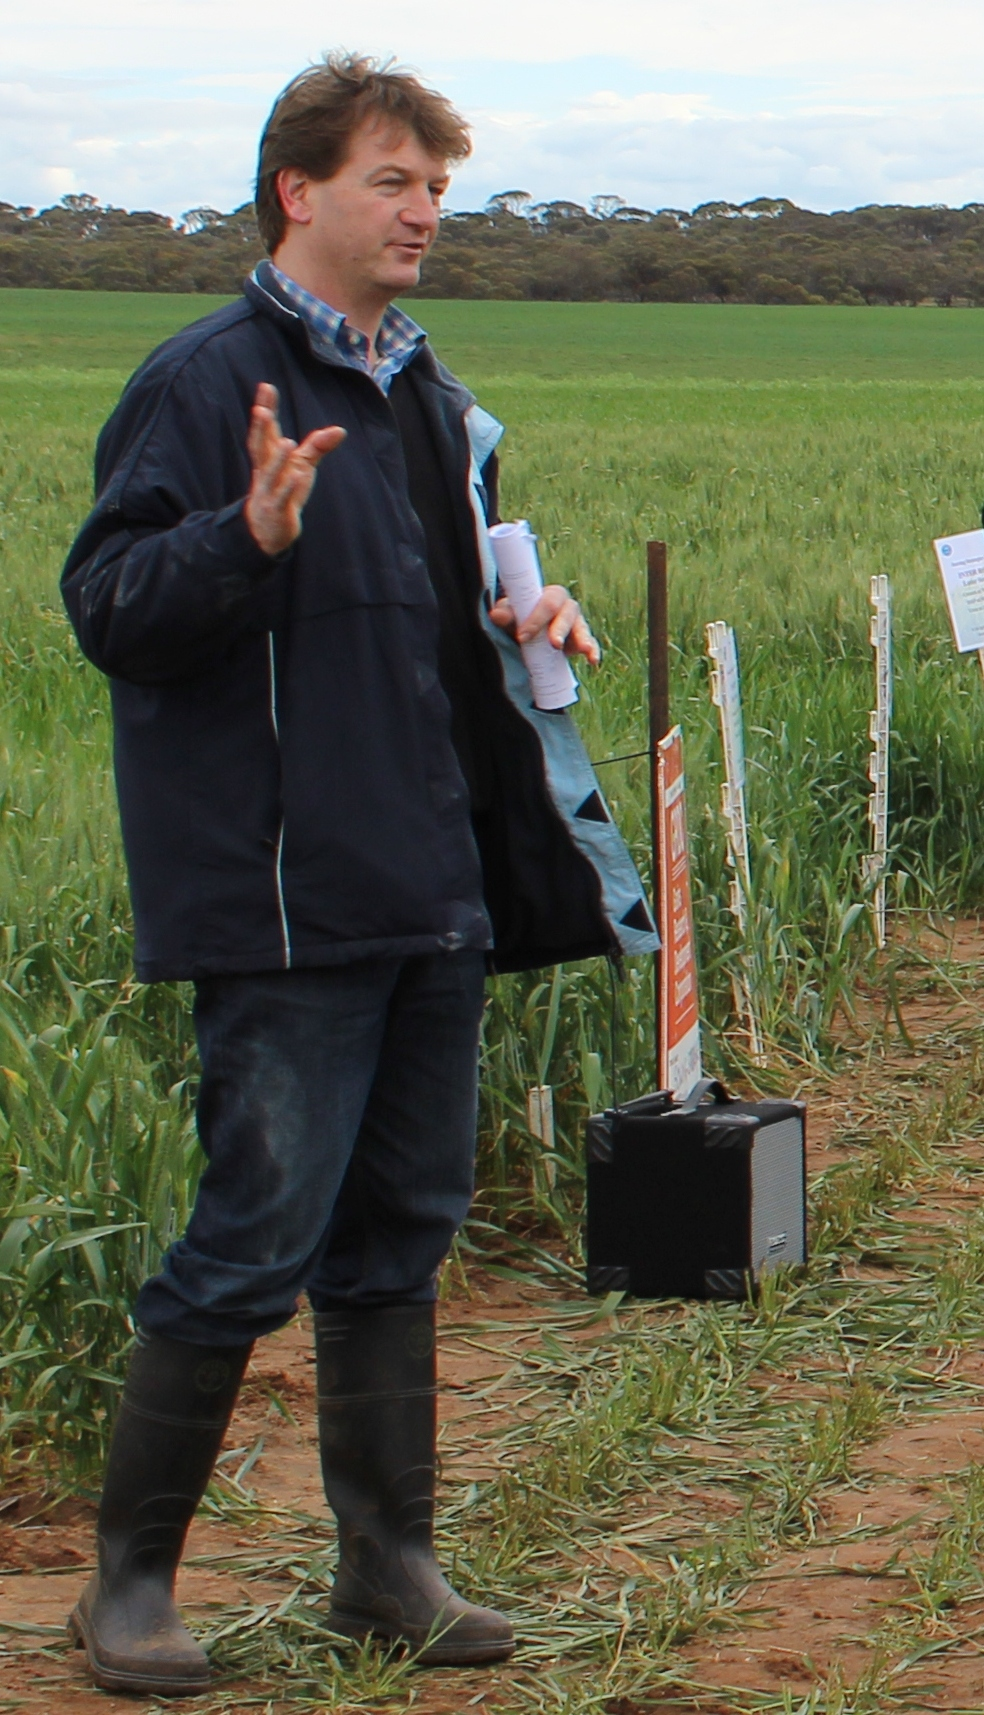 Dr Rick Llewellyn, CSIRO is a farming systems researcher says the overall cost of weeds to Australian grain growers is estimated to be $3.3b, or over $140/ha in expenditure and losses.